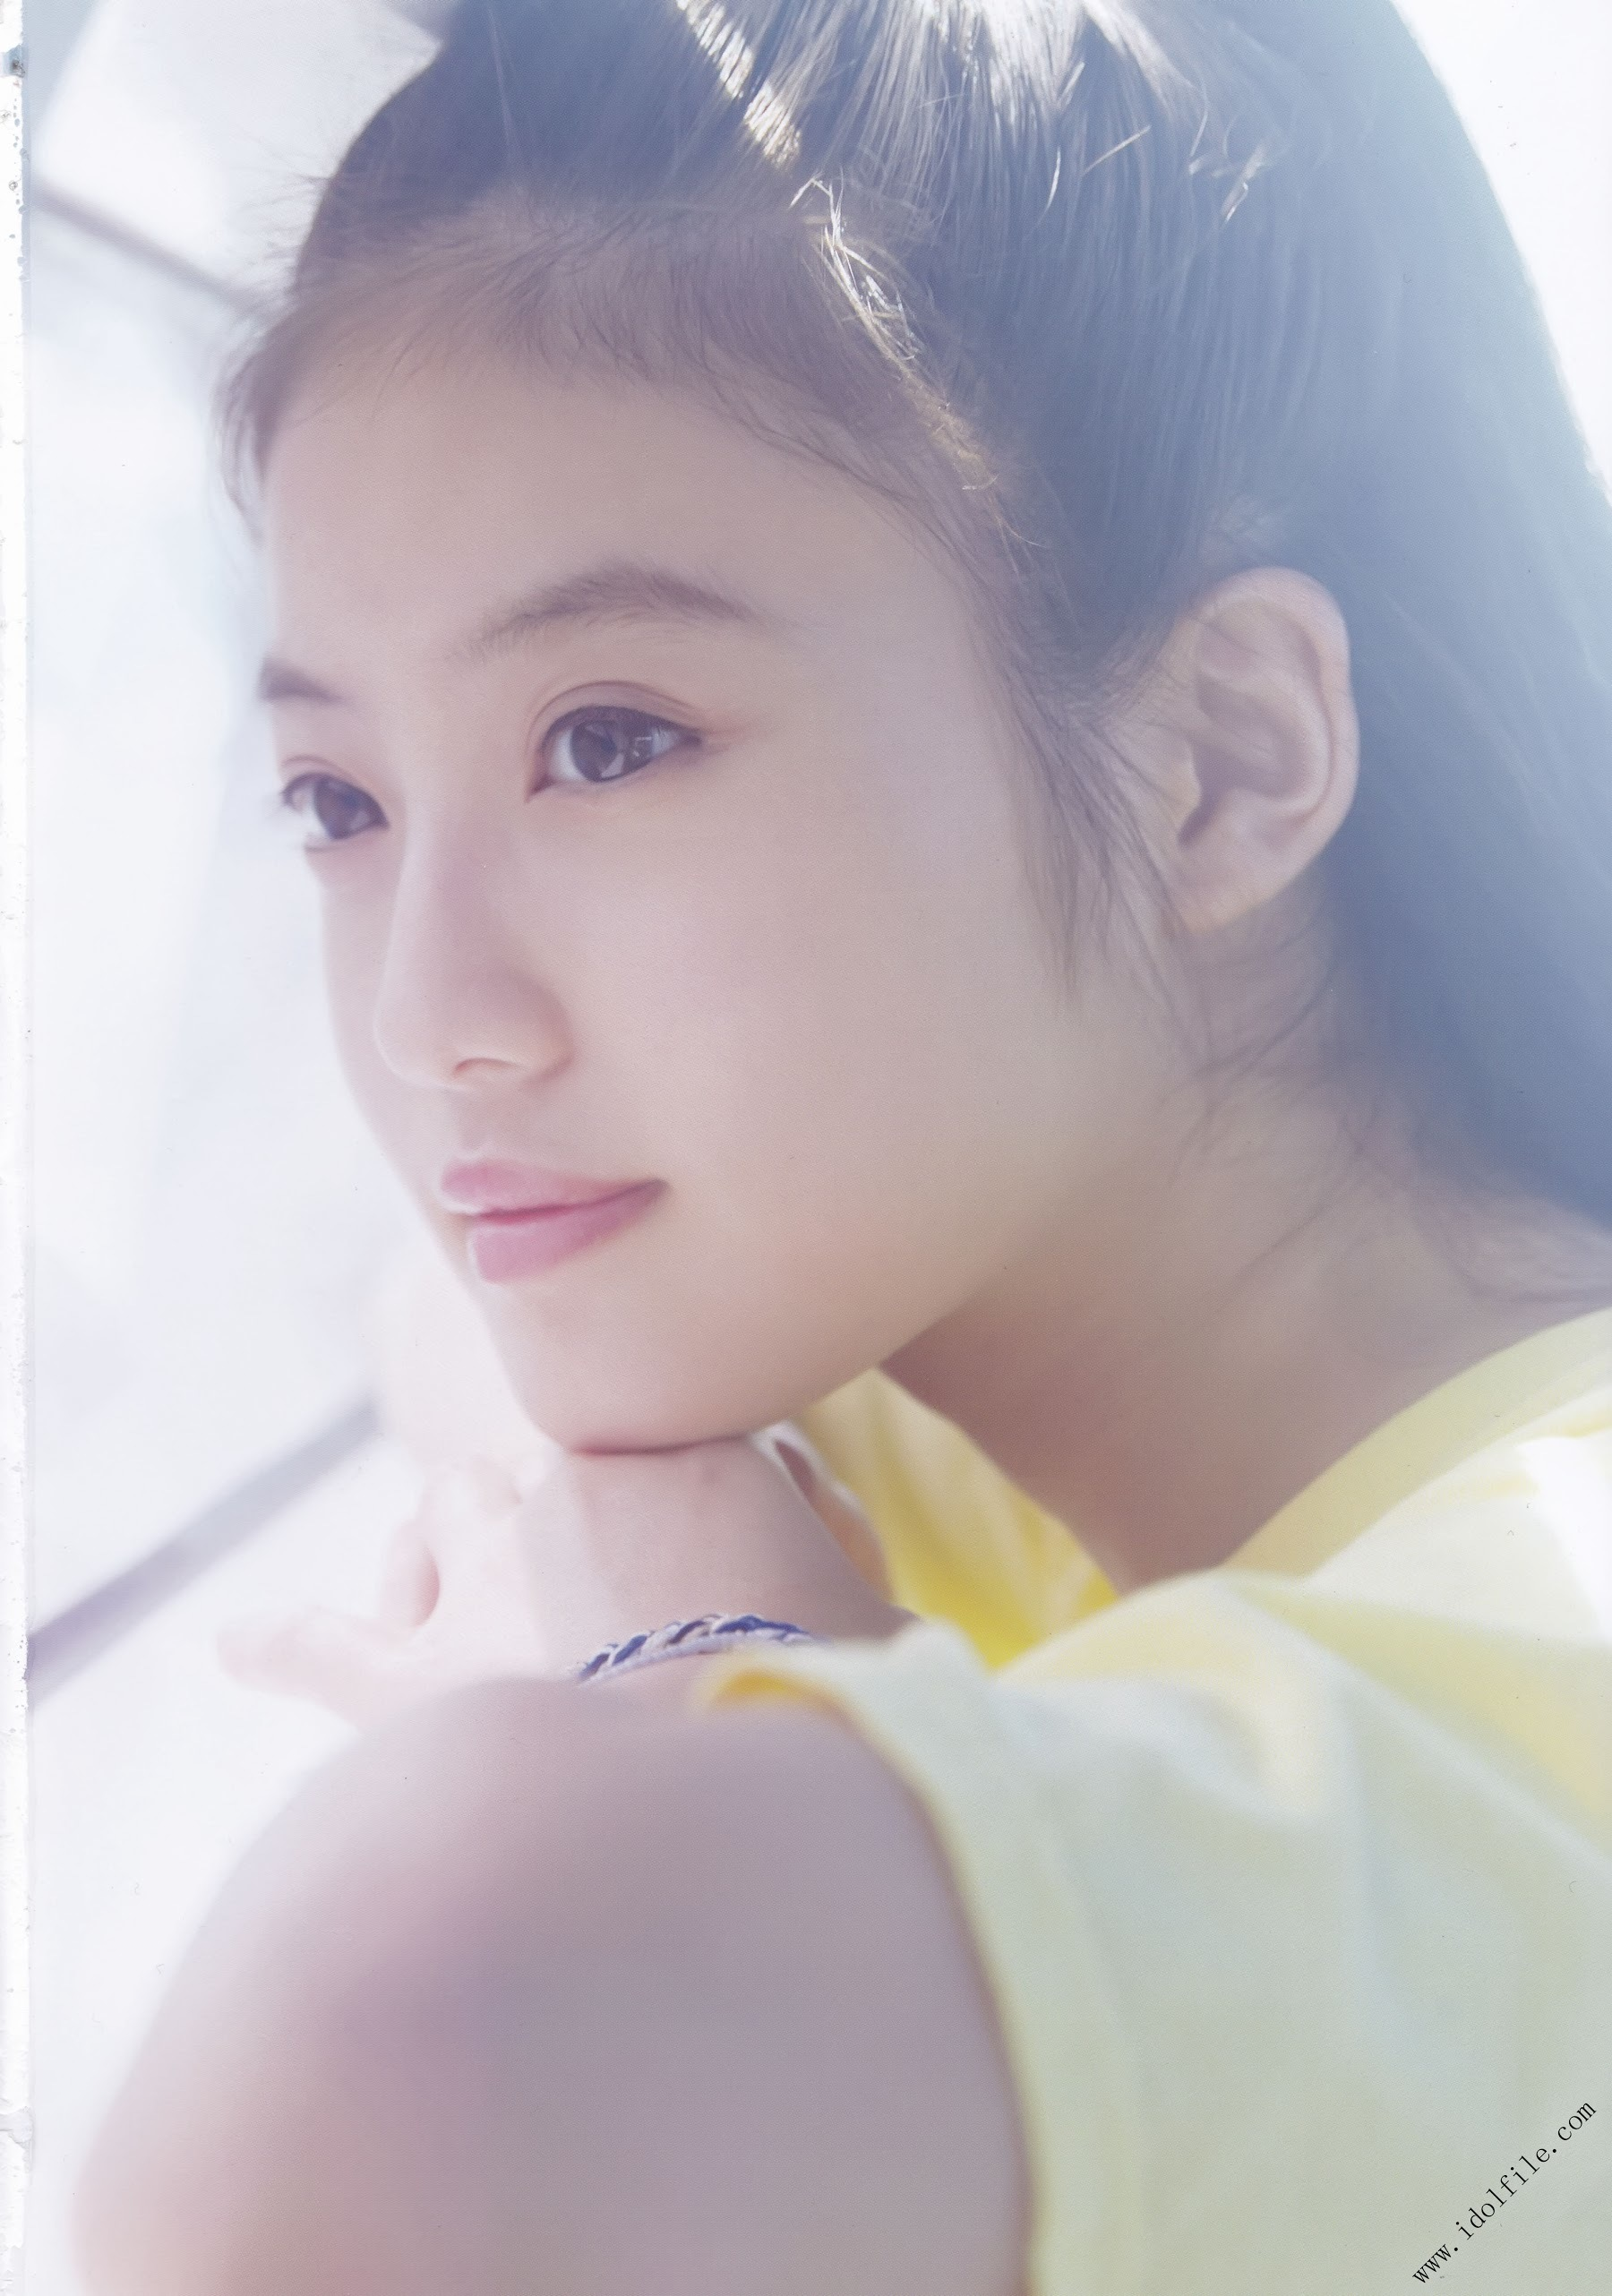 Pretty and beautiful, 22 years old and innocent Moving to the next stage as an actress Mio Imada008